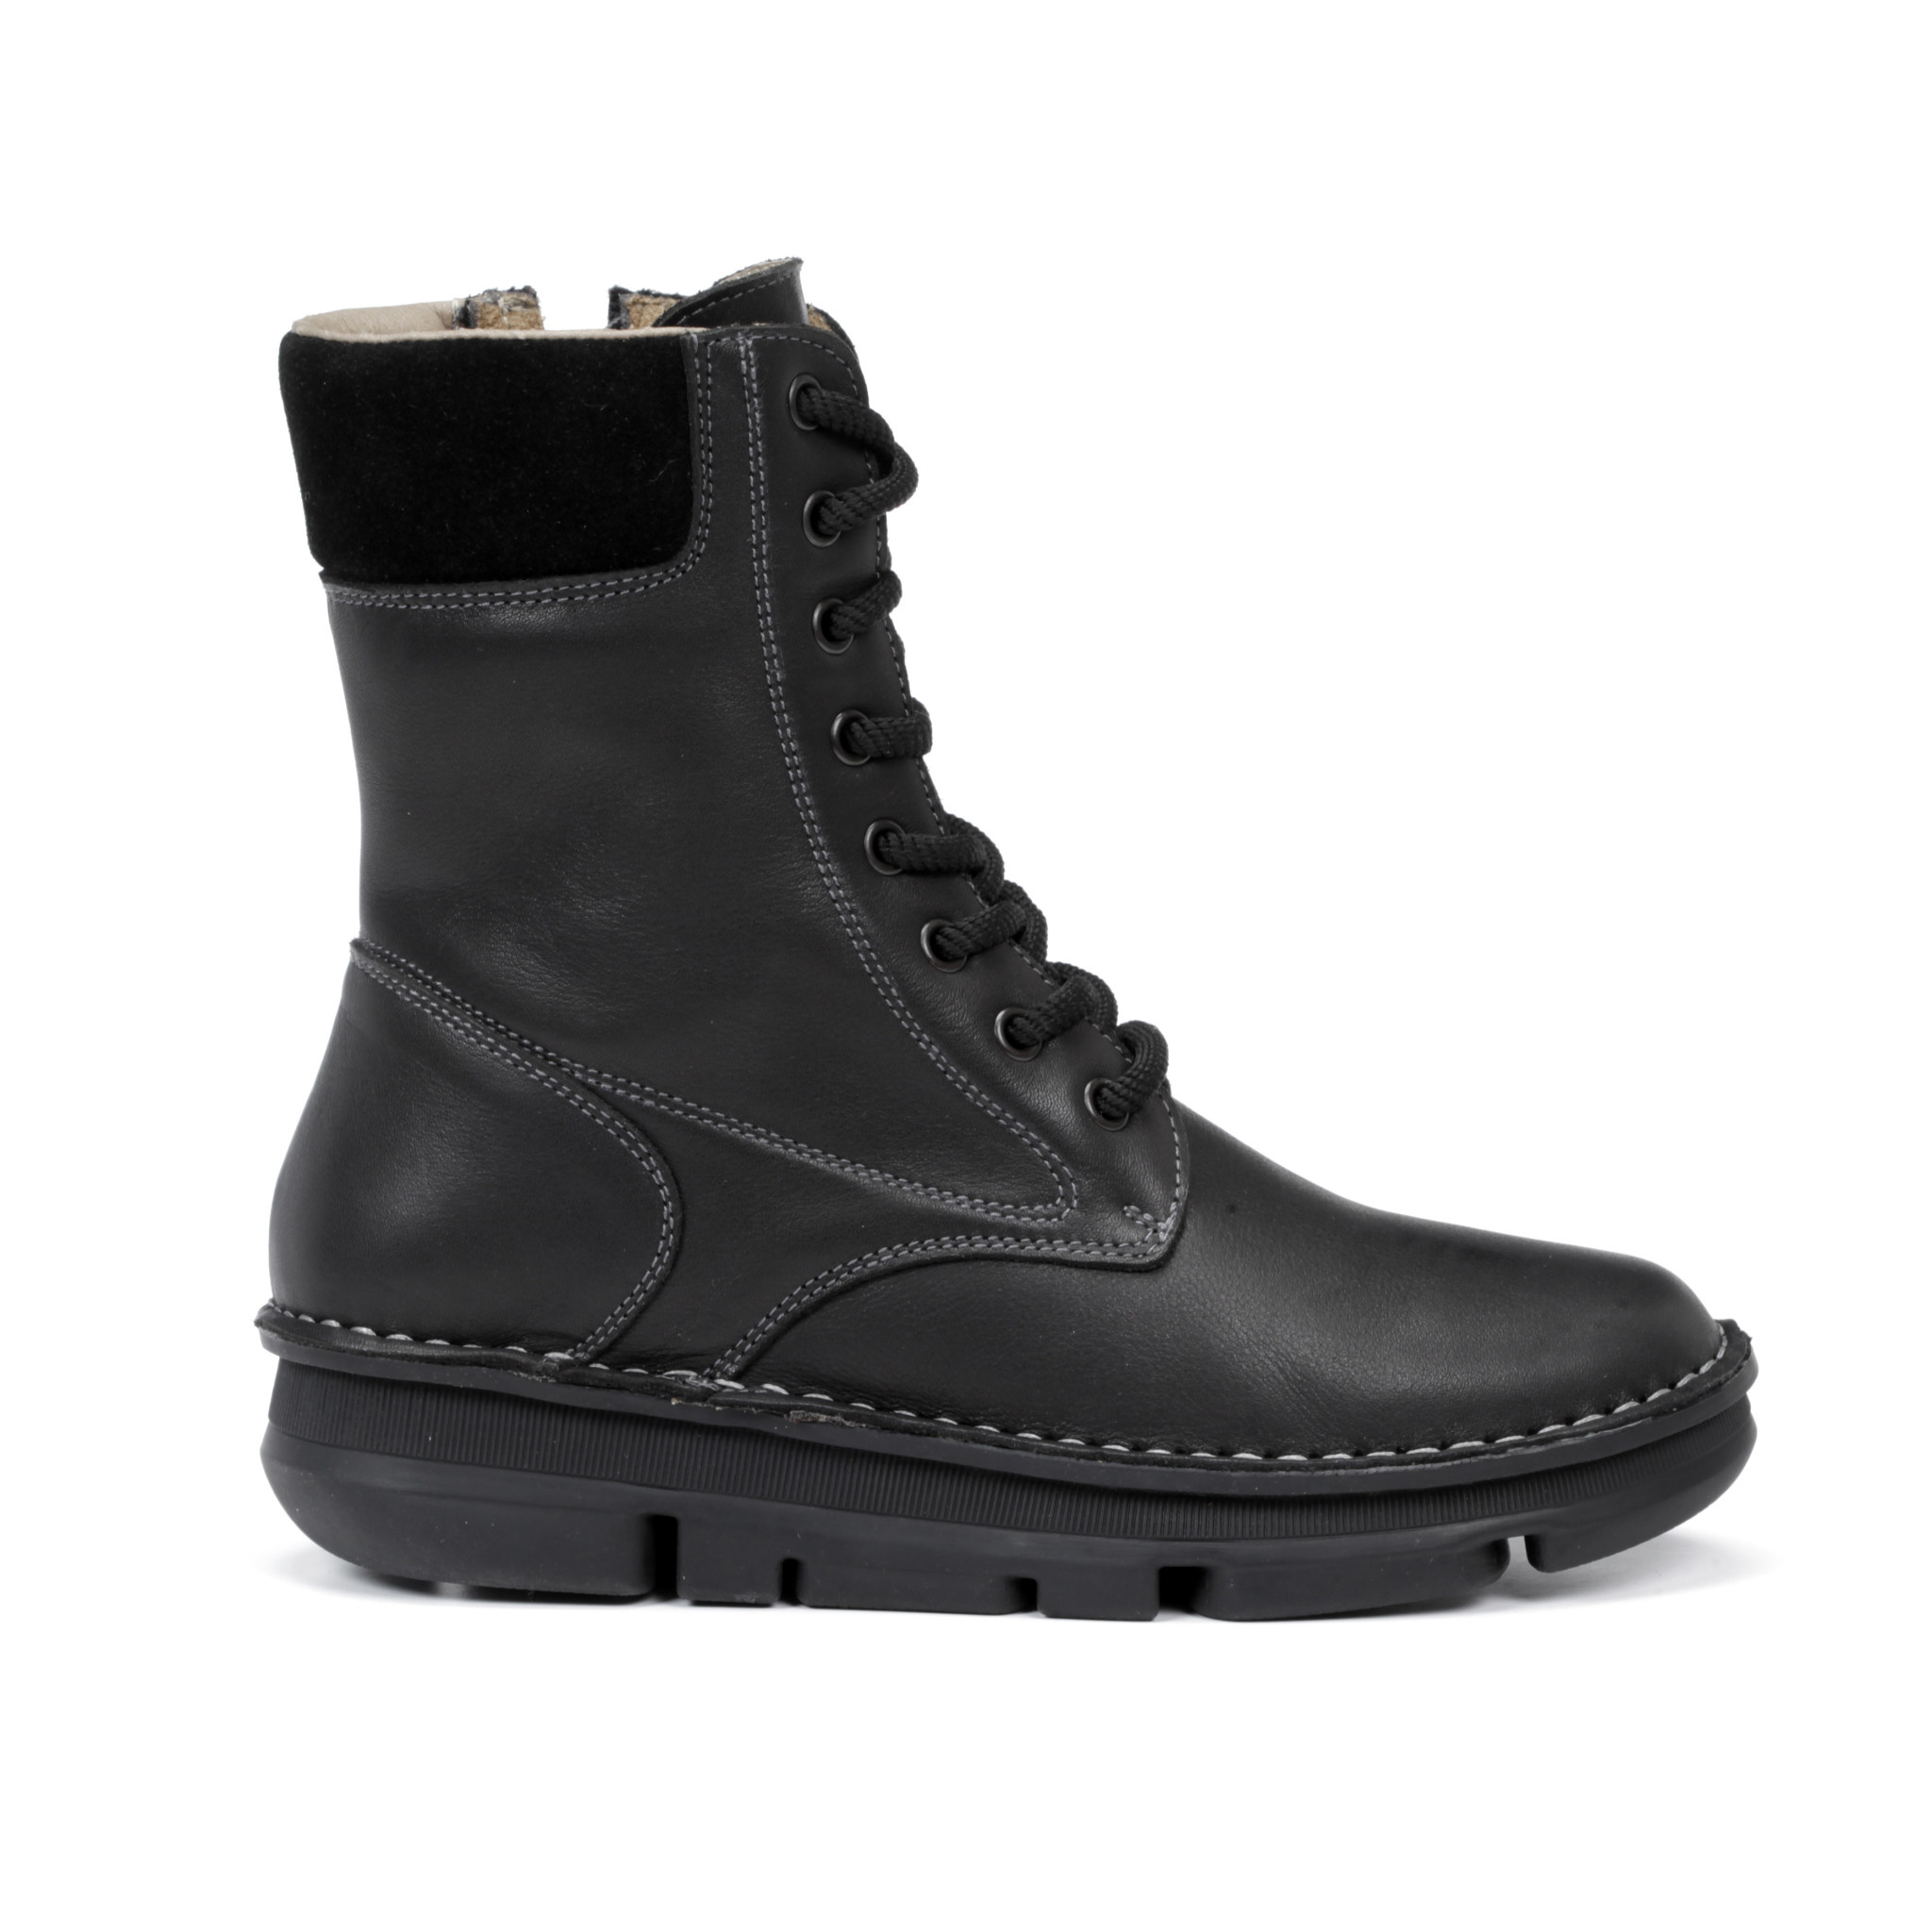 On Foot On Foot - 29505 Women boots - Black